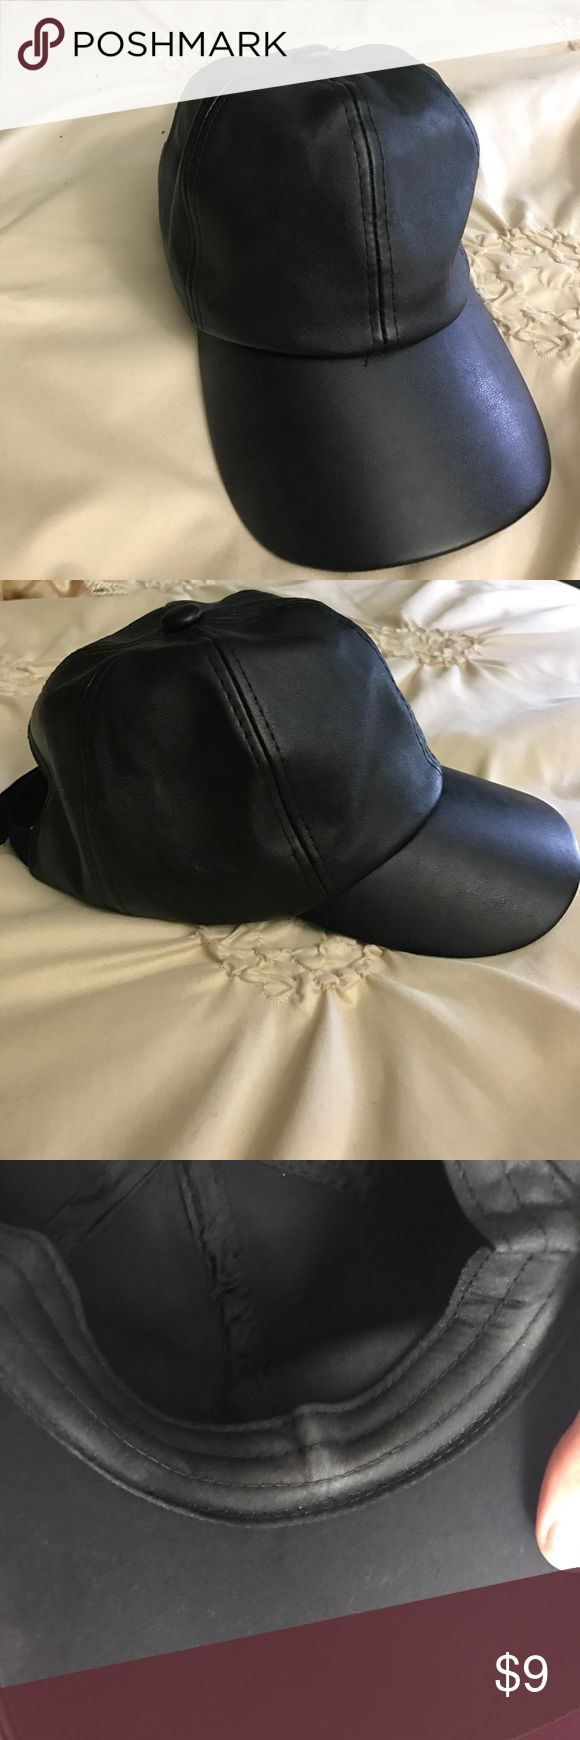 Black leather baseball cap Faux leather baseball cap. Worn once or twice, make up on the inside rim. Does not affect wear. ❌NO TRADES❌ Fashion Nova Accessories Hats